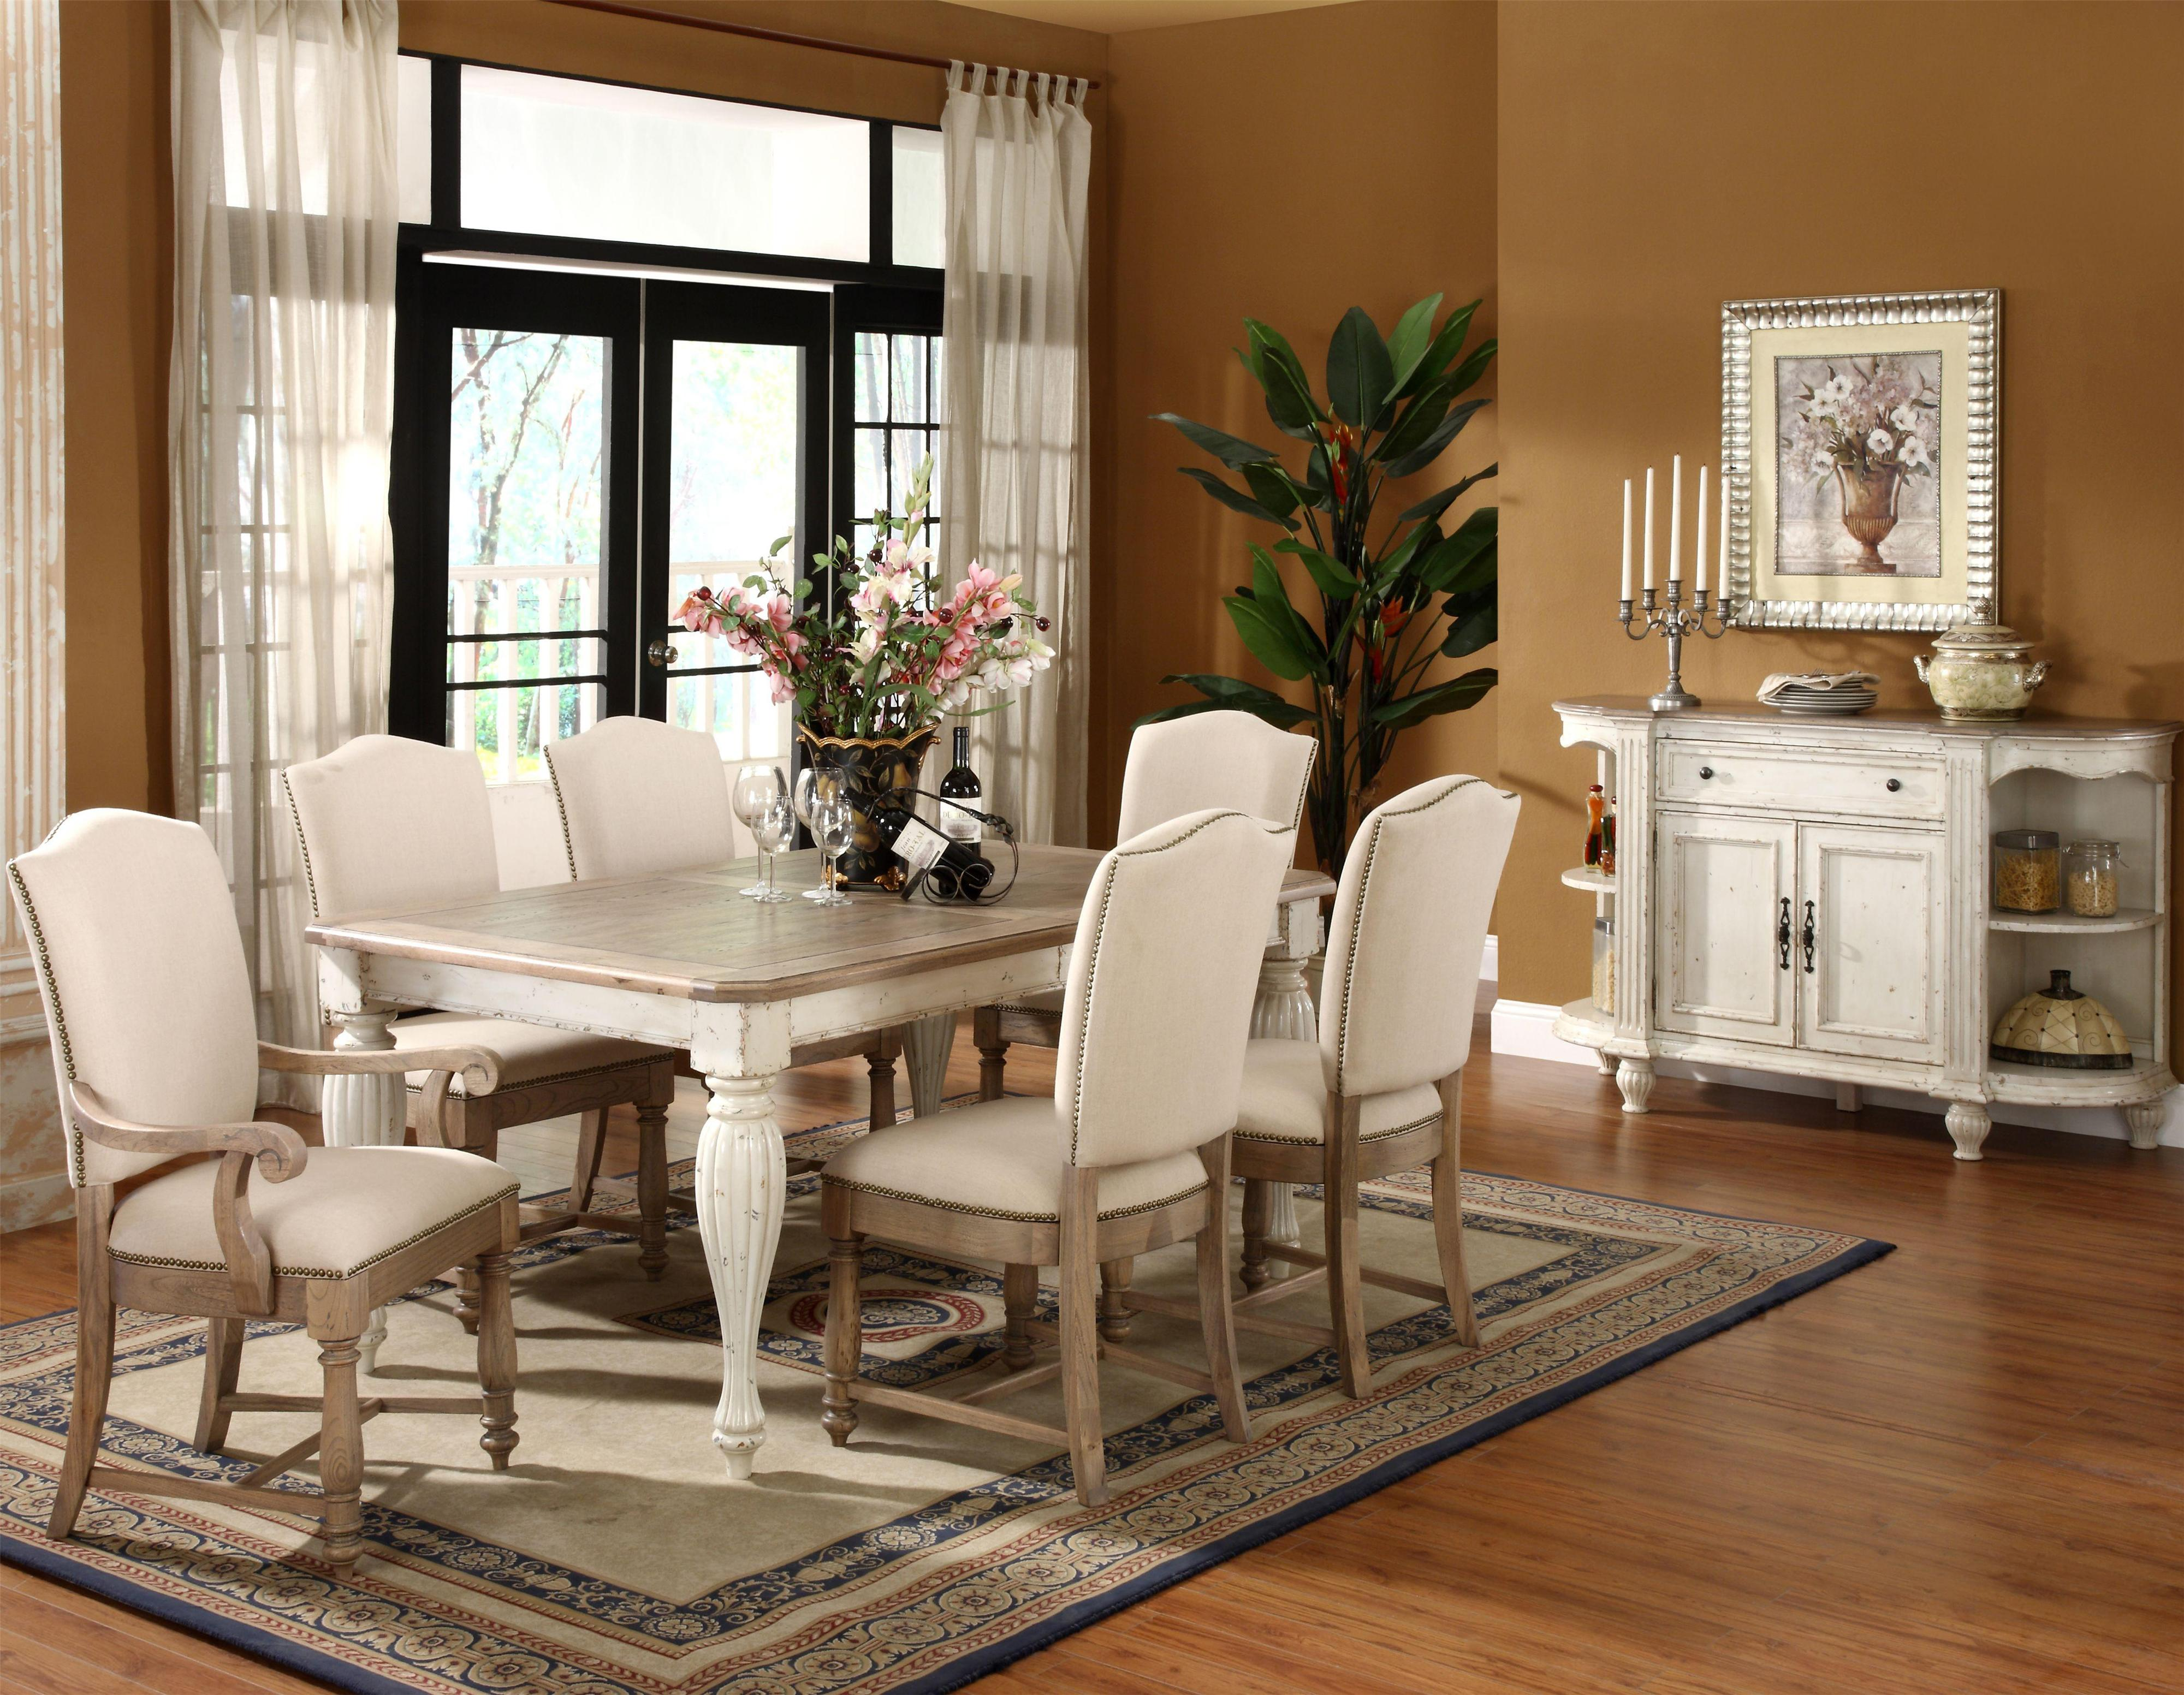 Riverside Furniture Coventry Two Tone Formal Dining Room Group - Item Number: 32500 F Dining Room Group 1